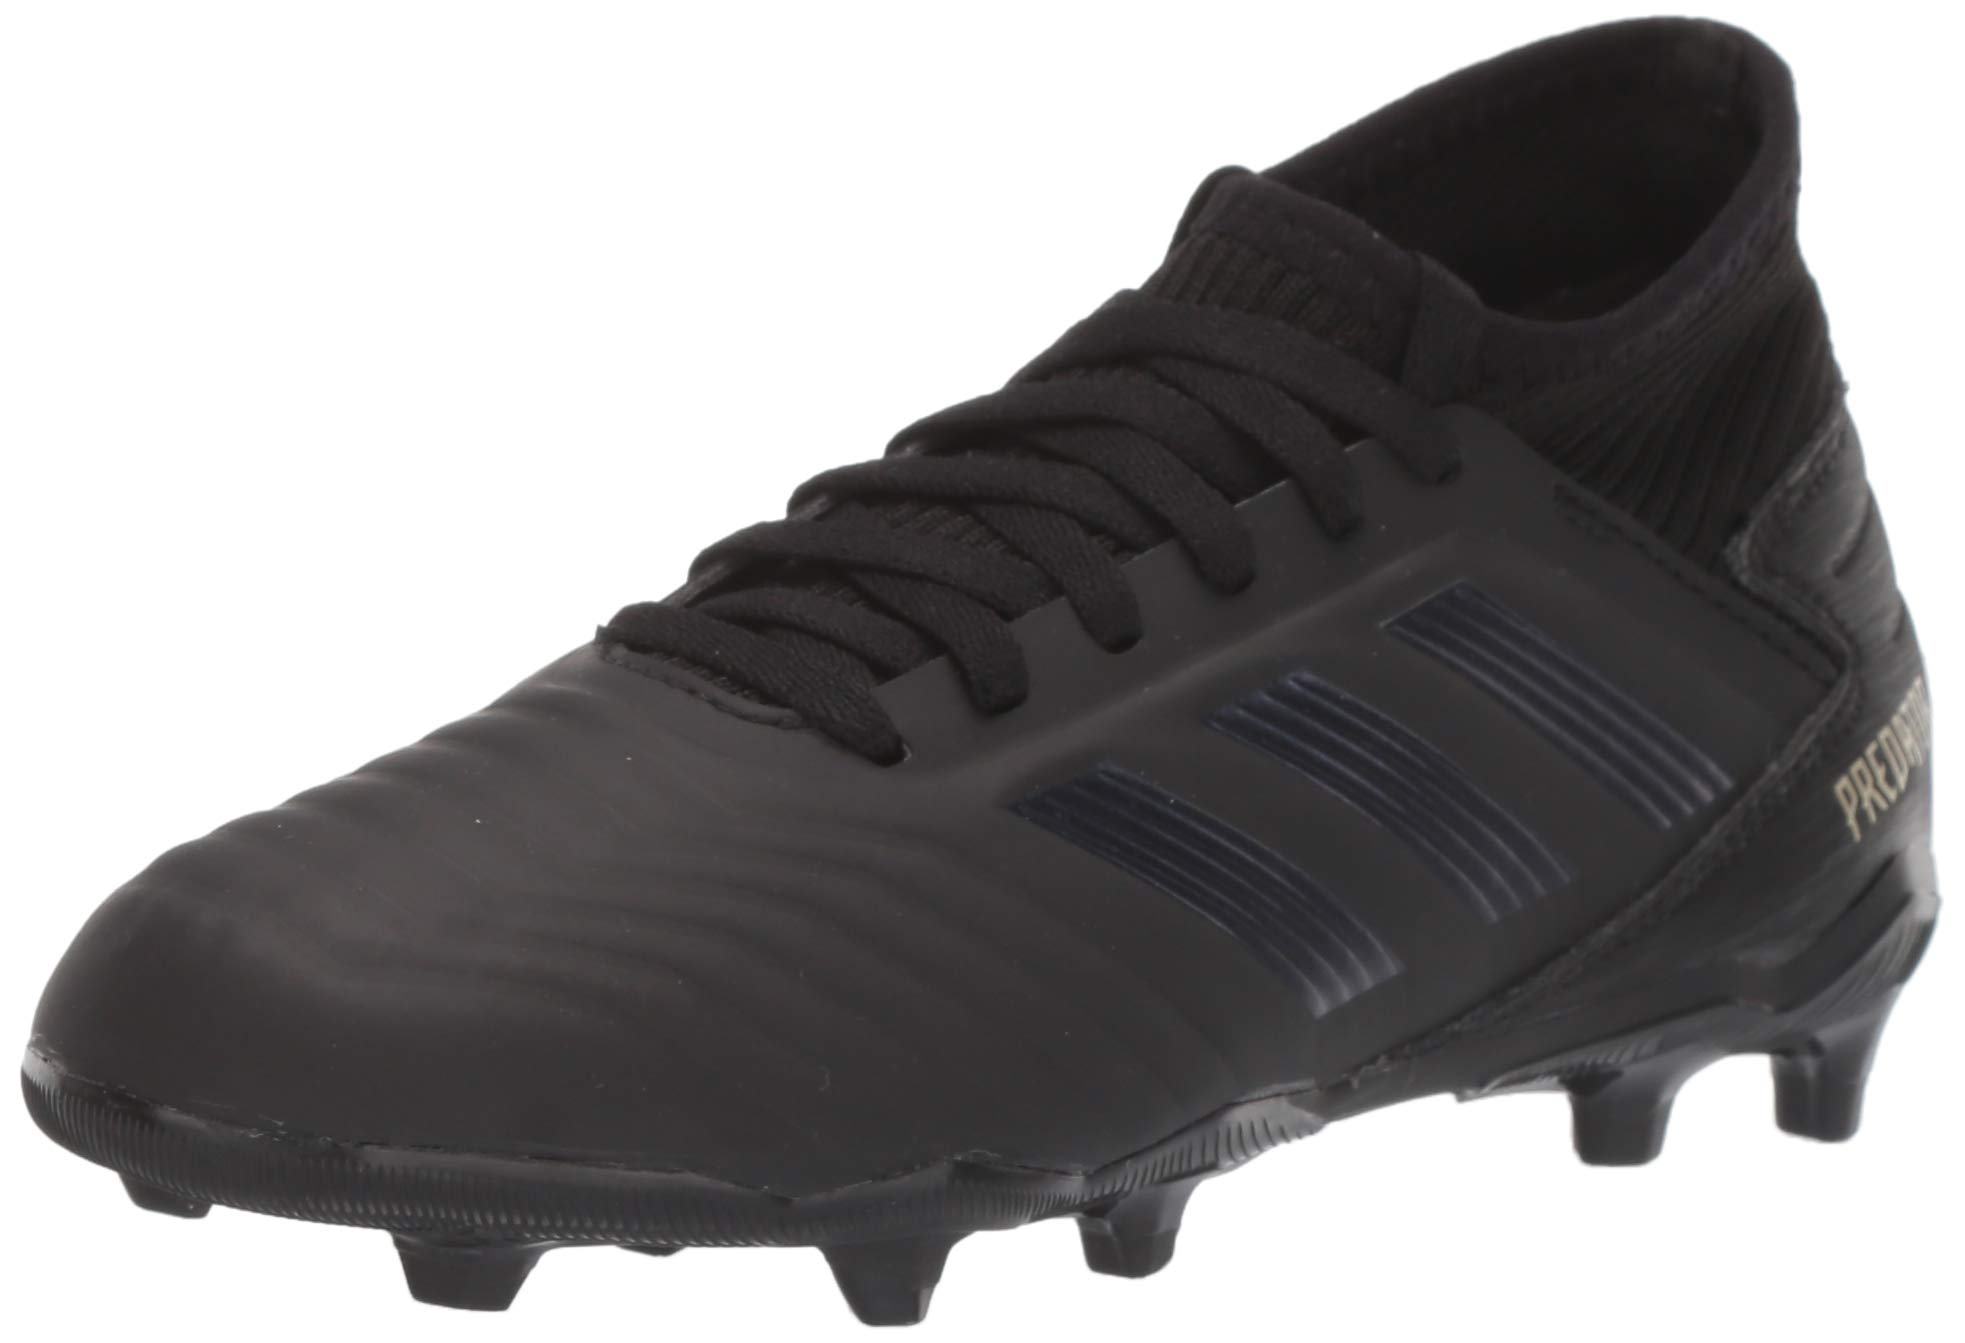 adidas Unisex Predator 19.3 Firm Ground Soccer Shoe, Black/Gold Metallic, 13K M US Little Kid